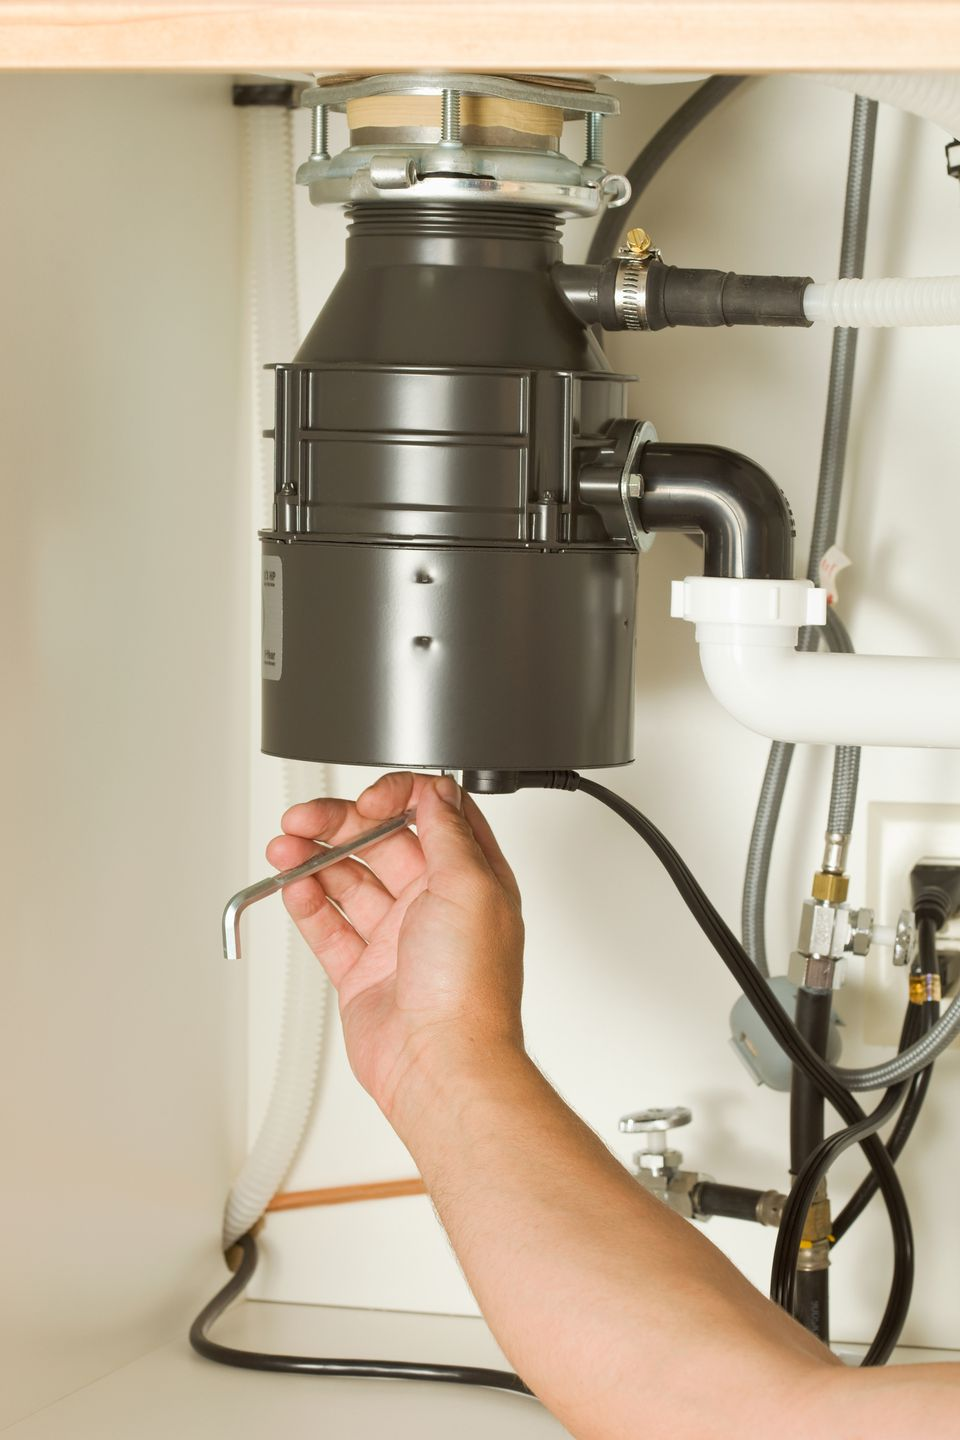 Troubleshooting Garbage Disposal Problems